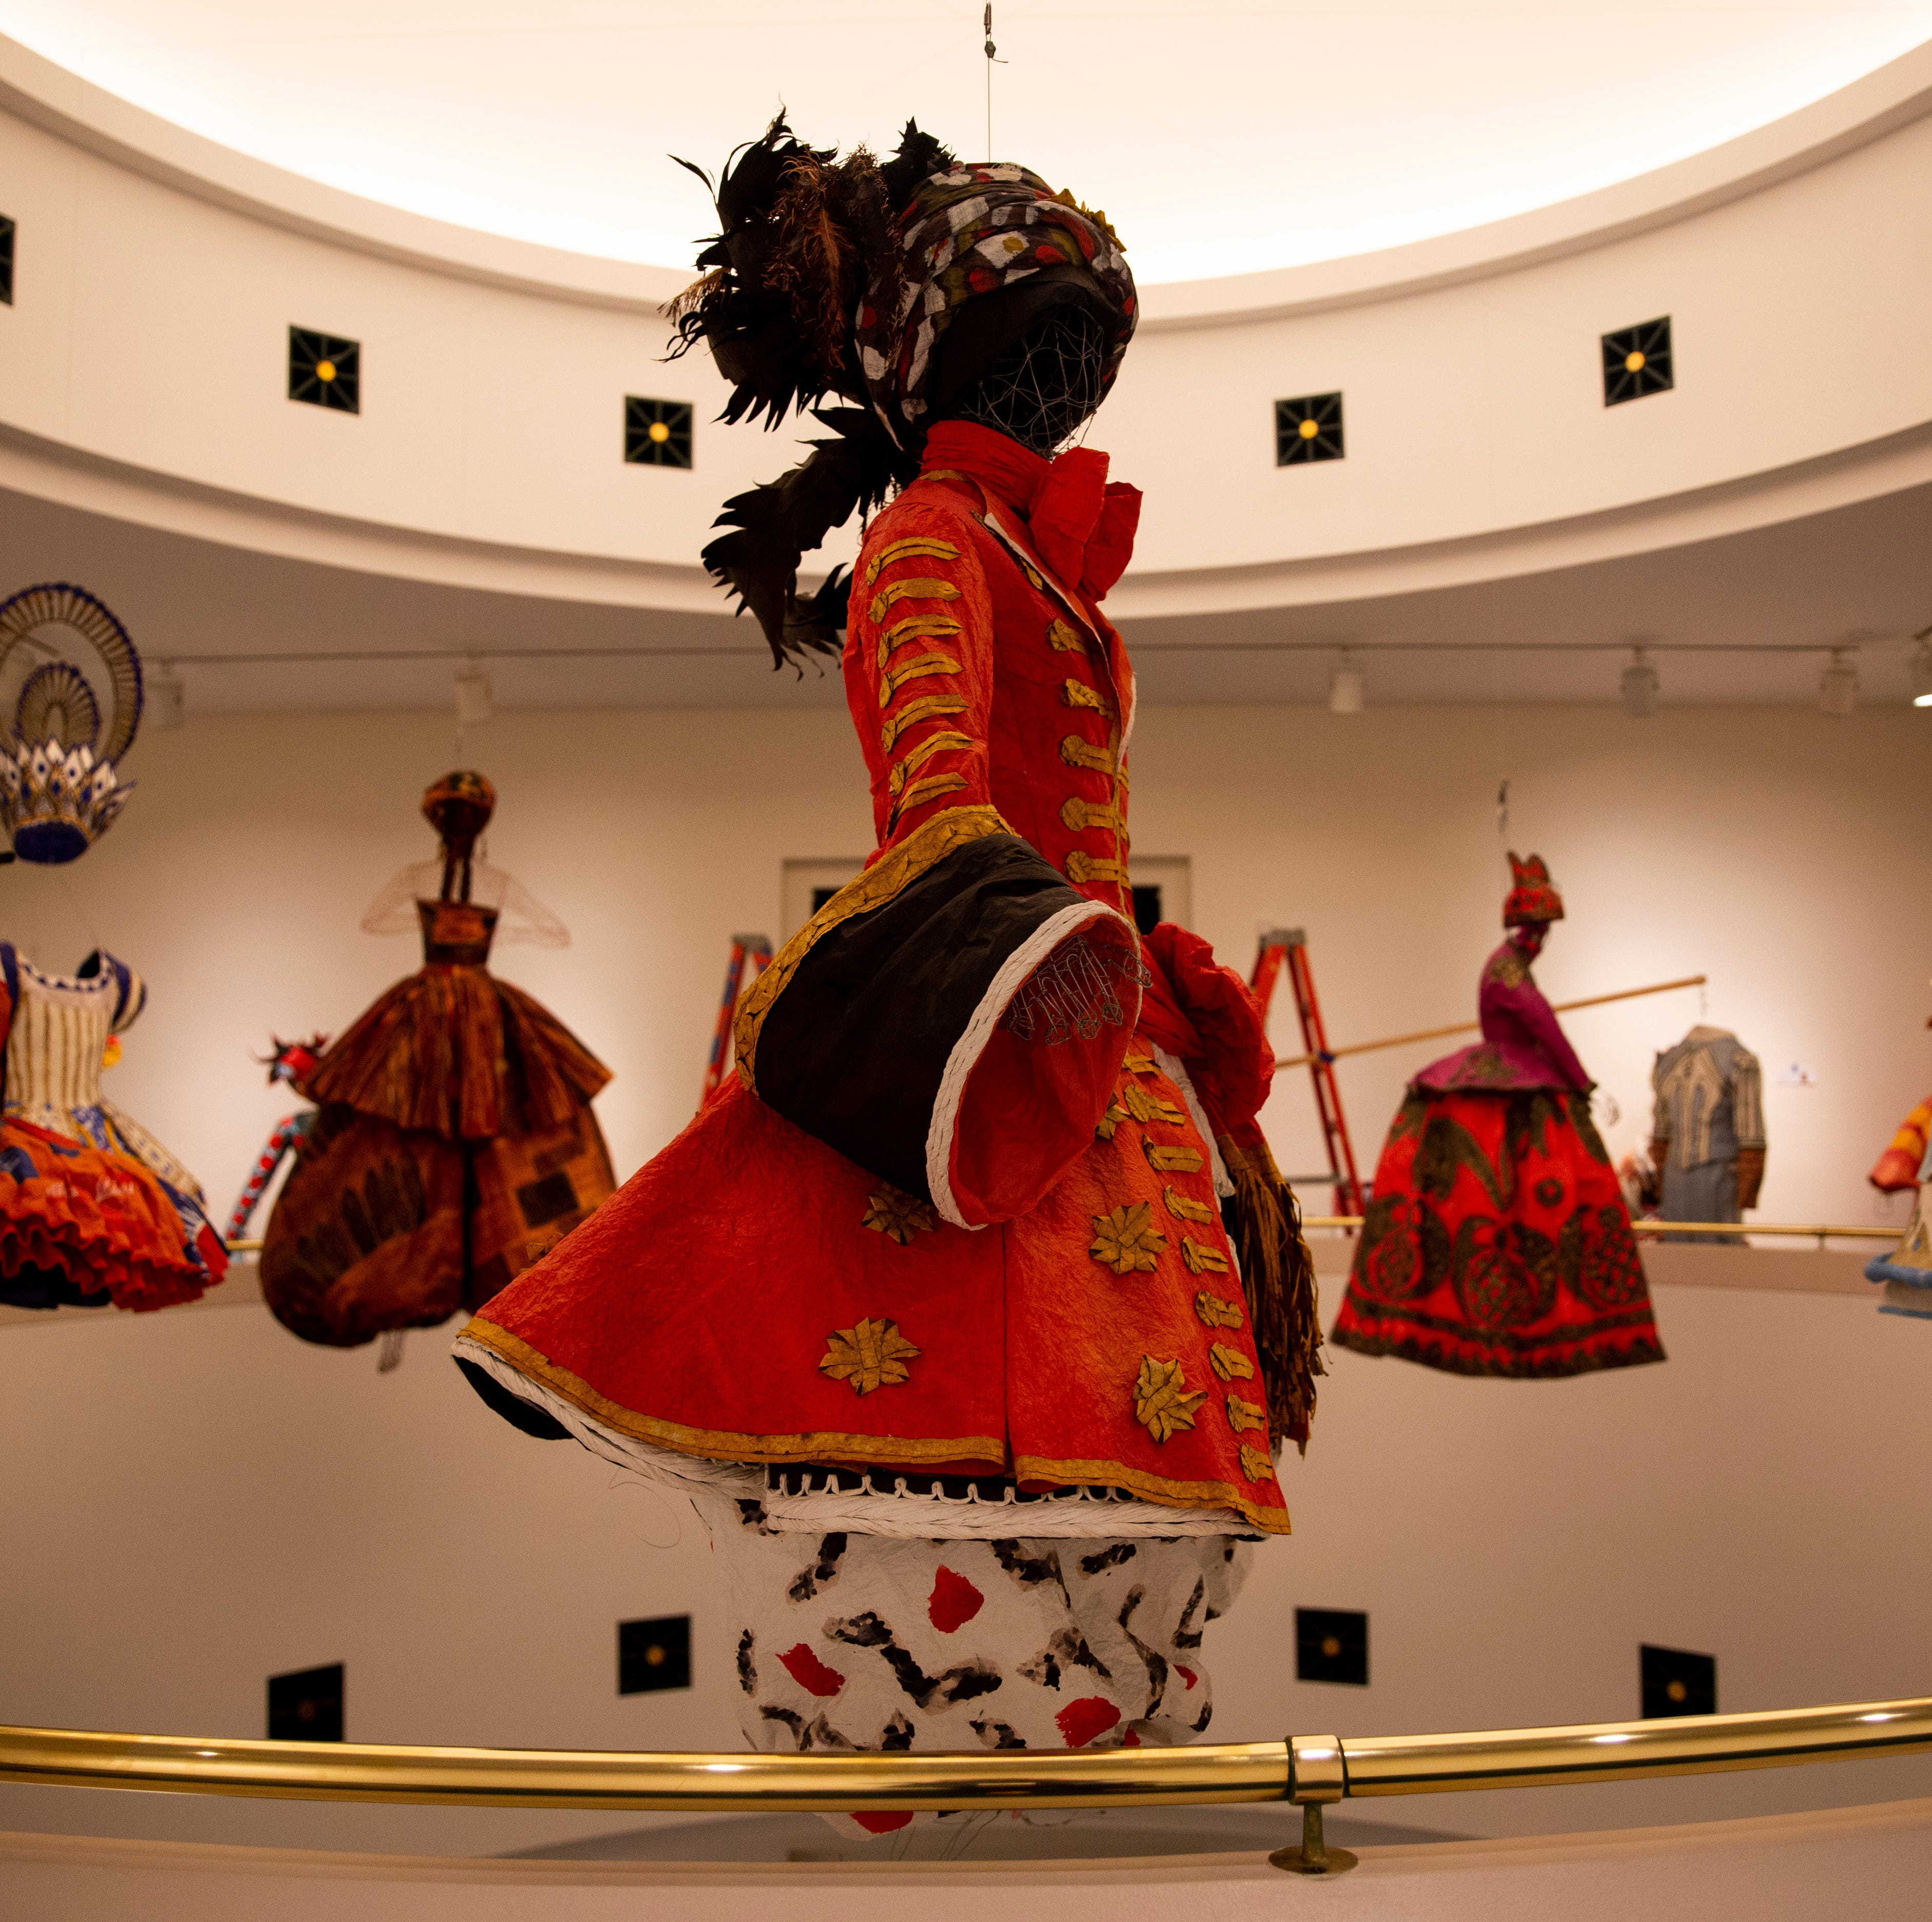 The subject steps out of the painting: Isabelle de Borchgrave costumes on display at Artis—Naples